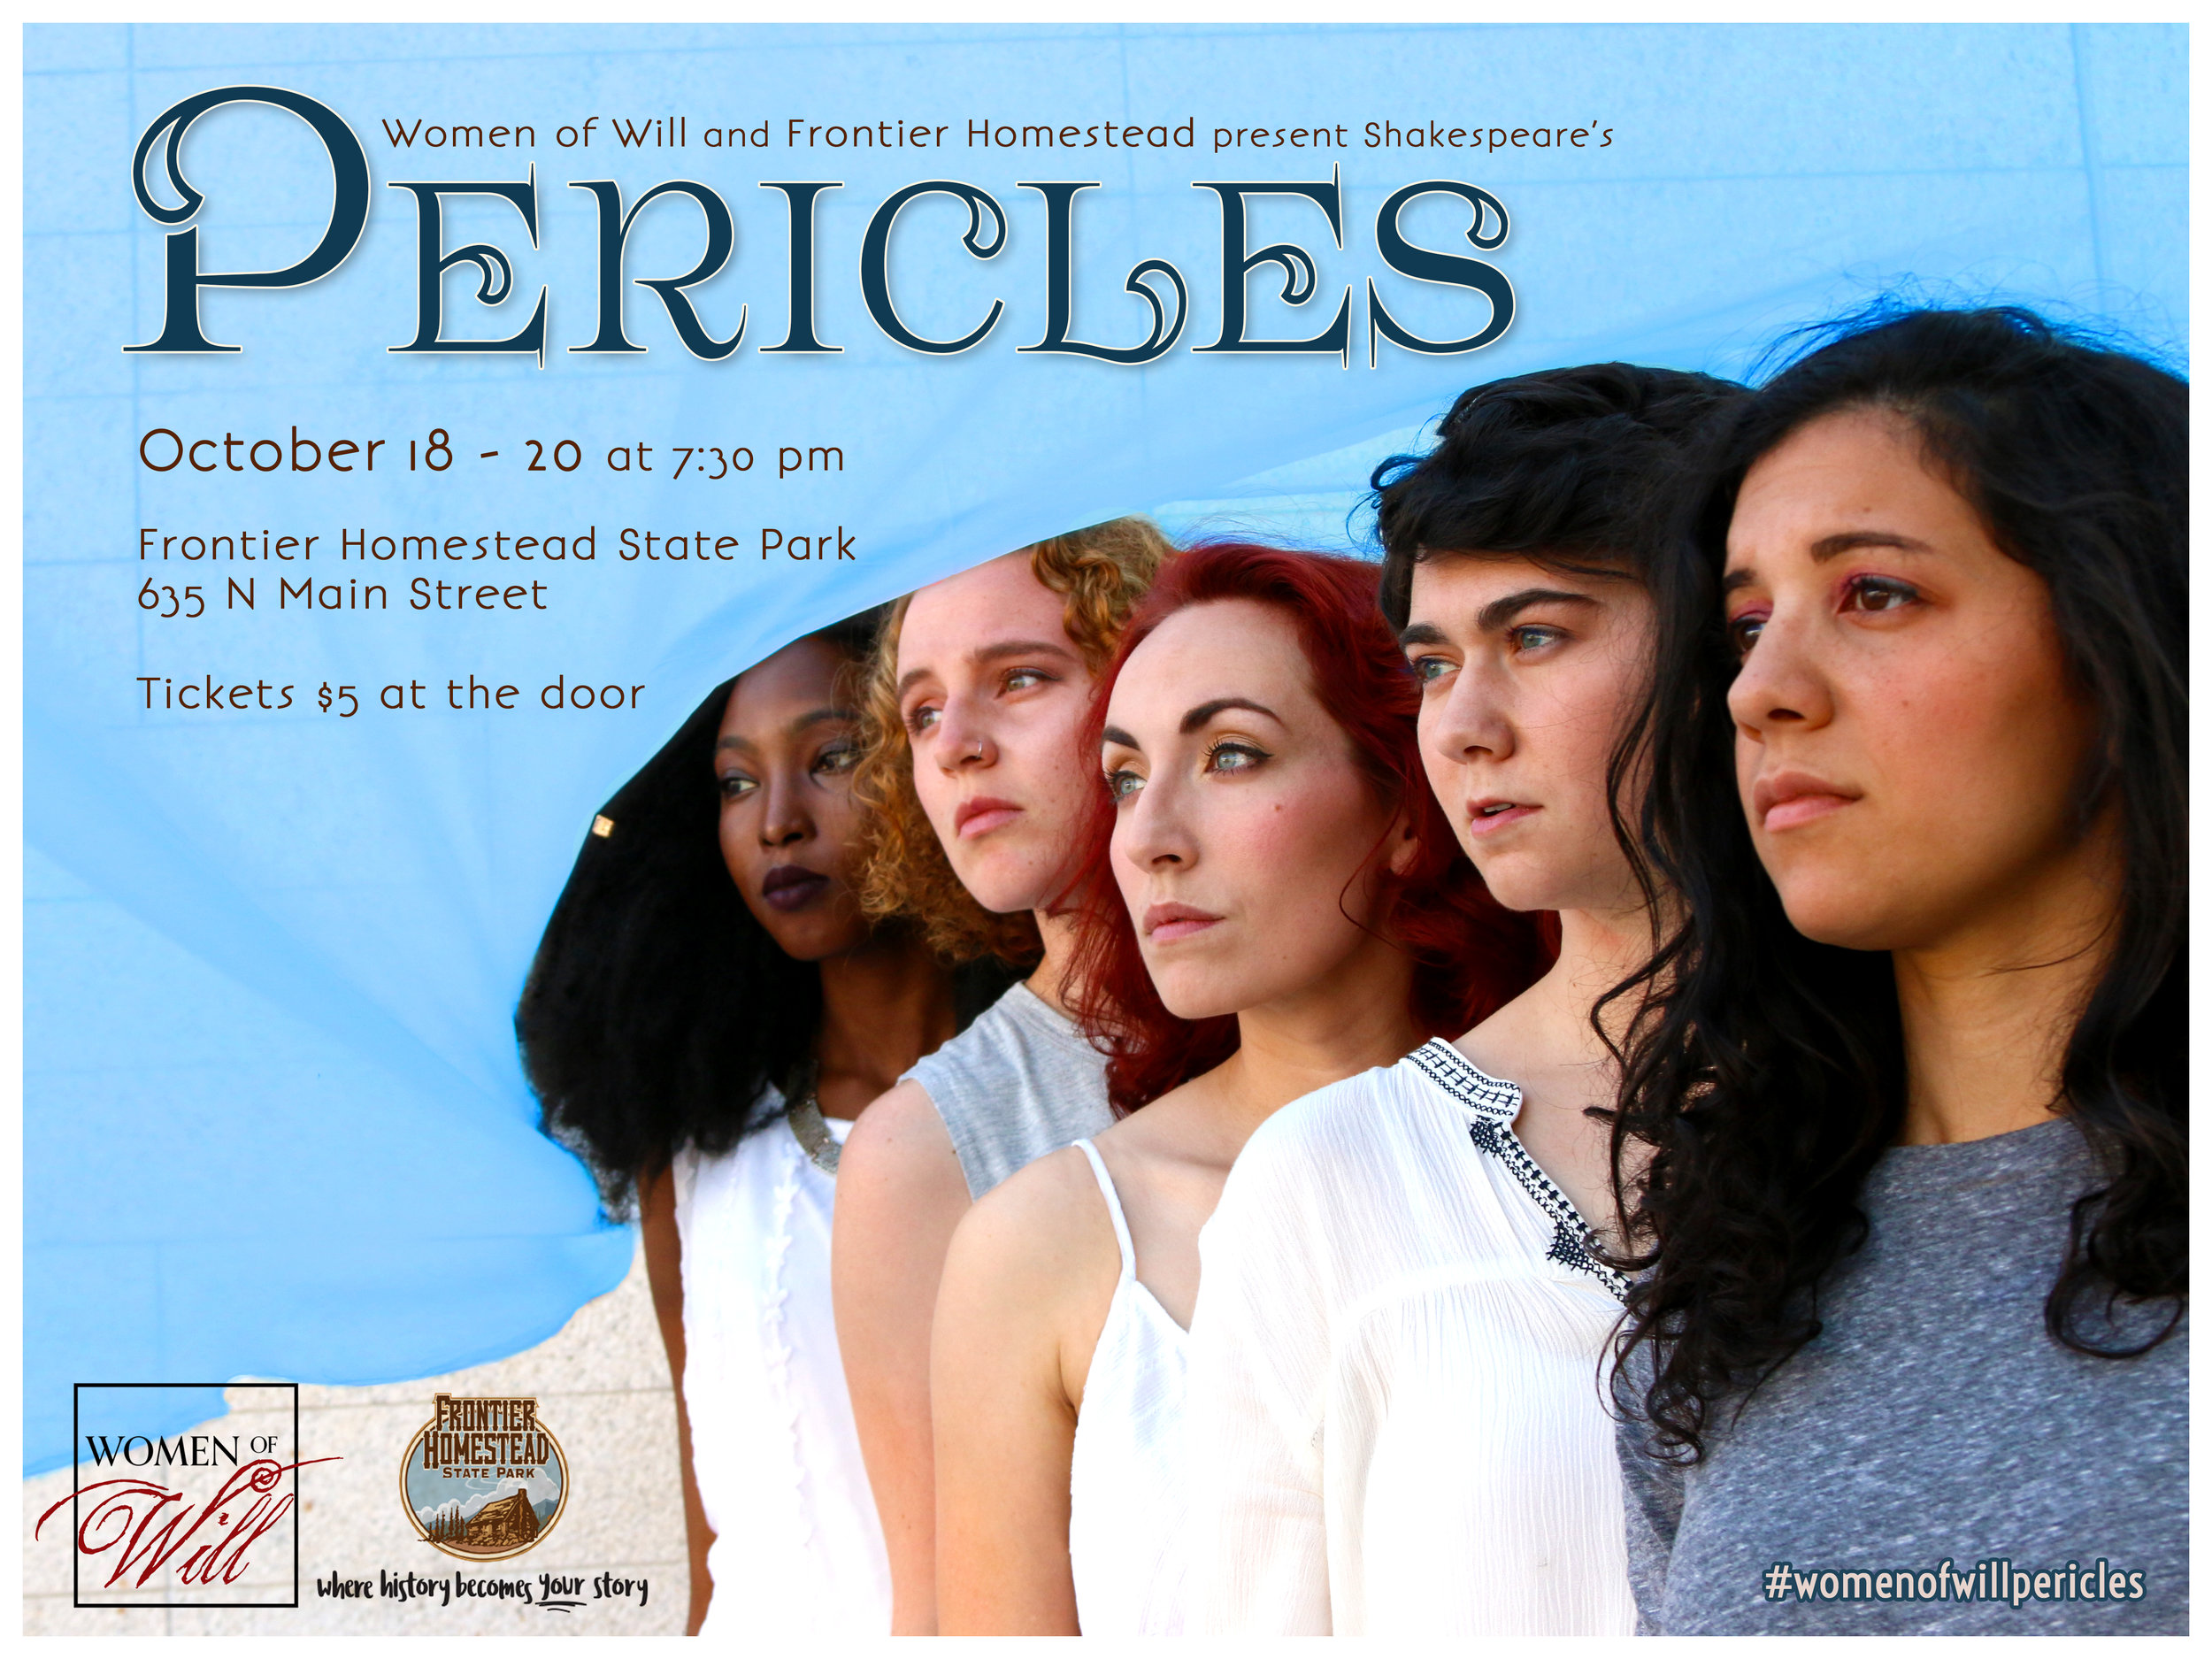 Pericles Poster.jpg